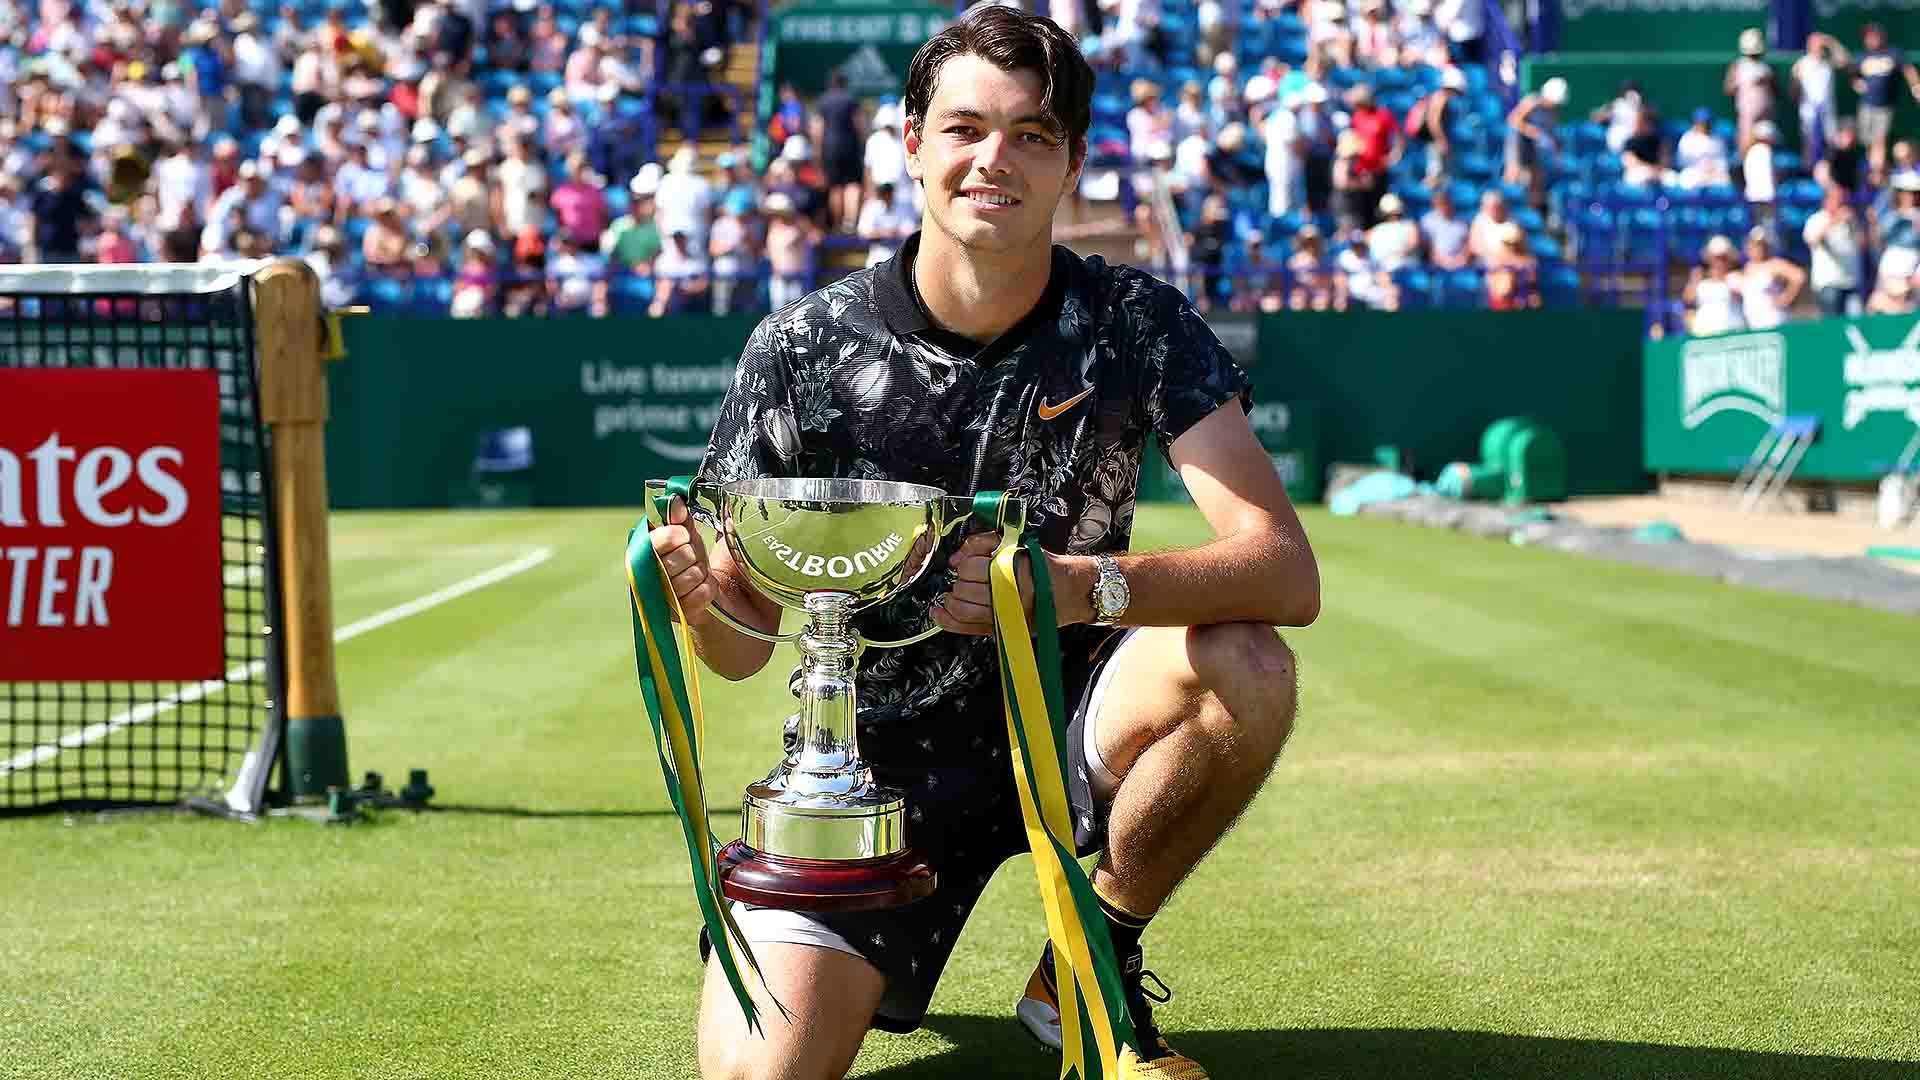 <a href='https://www.atptour.com/en/players/taylor-fritz/fb98/overview'>Taylor Fritz</a> dropped one set en route to the <a href='https://www.atptour.com/en/tournaments/eastbourne/741/overview'>Nature Valley International</a> trophy.